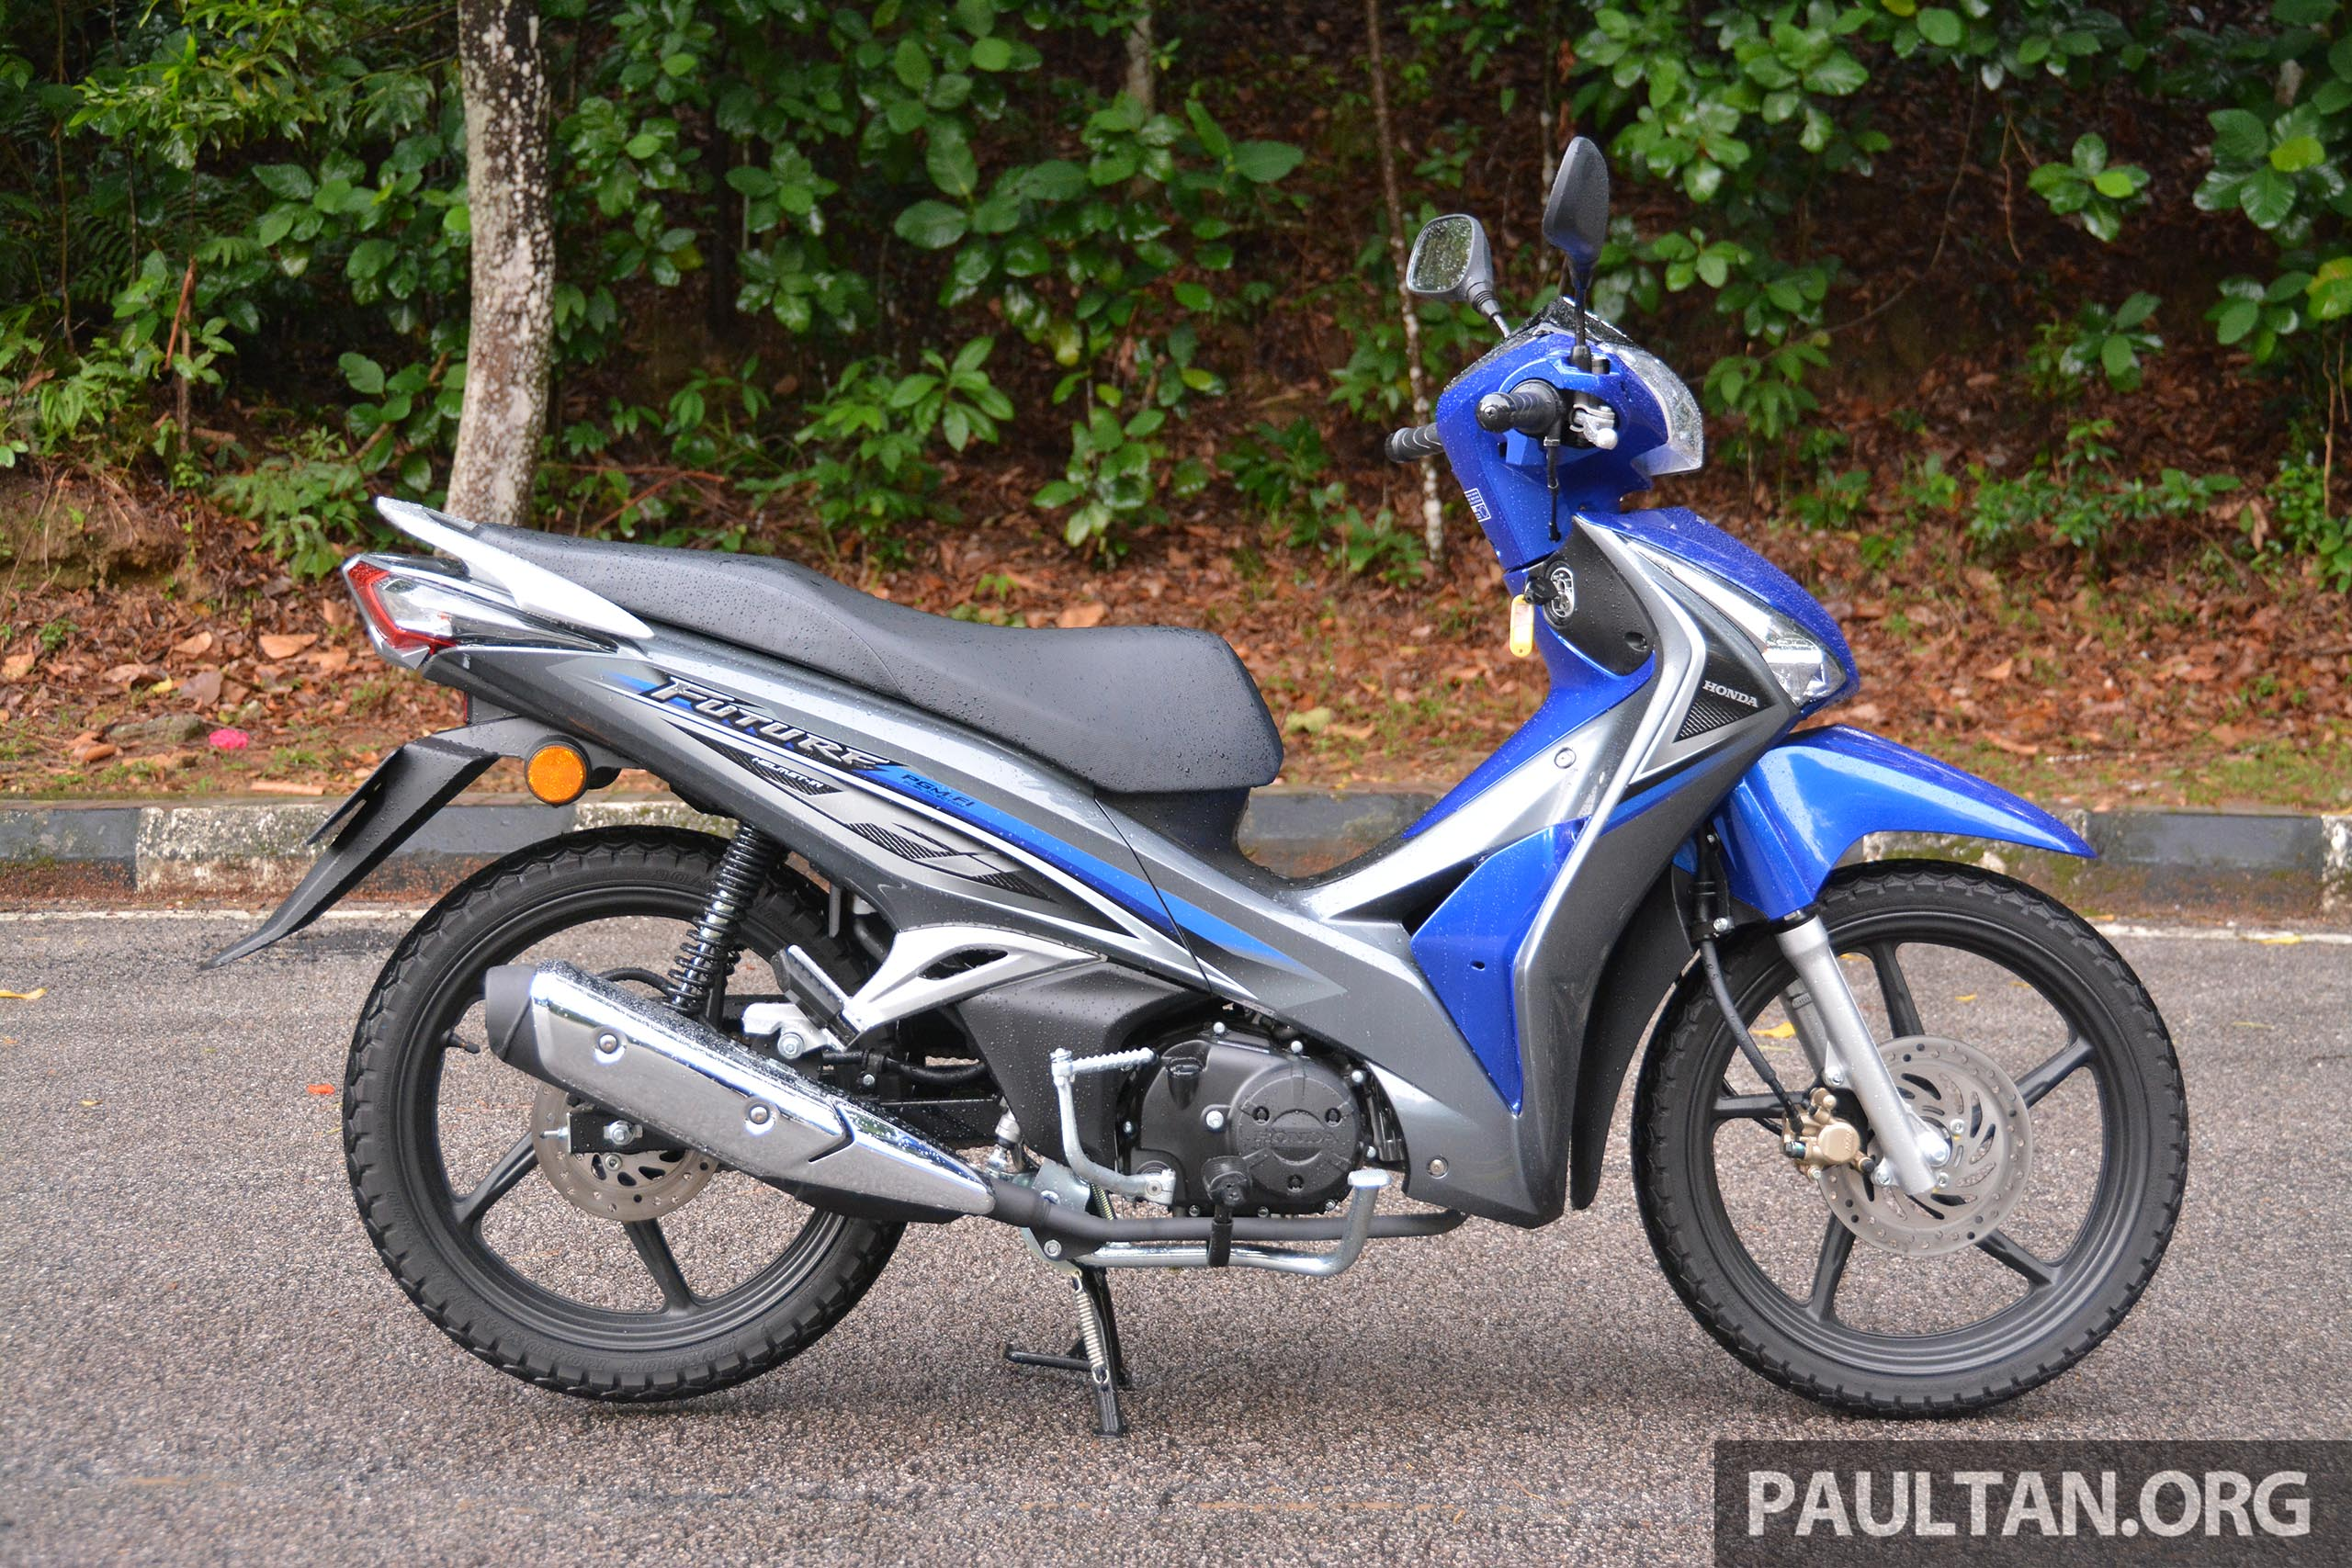 review: 2016 honda future fi - the future is now?